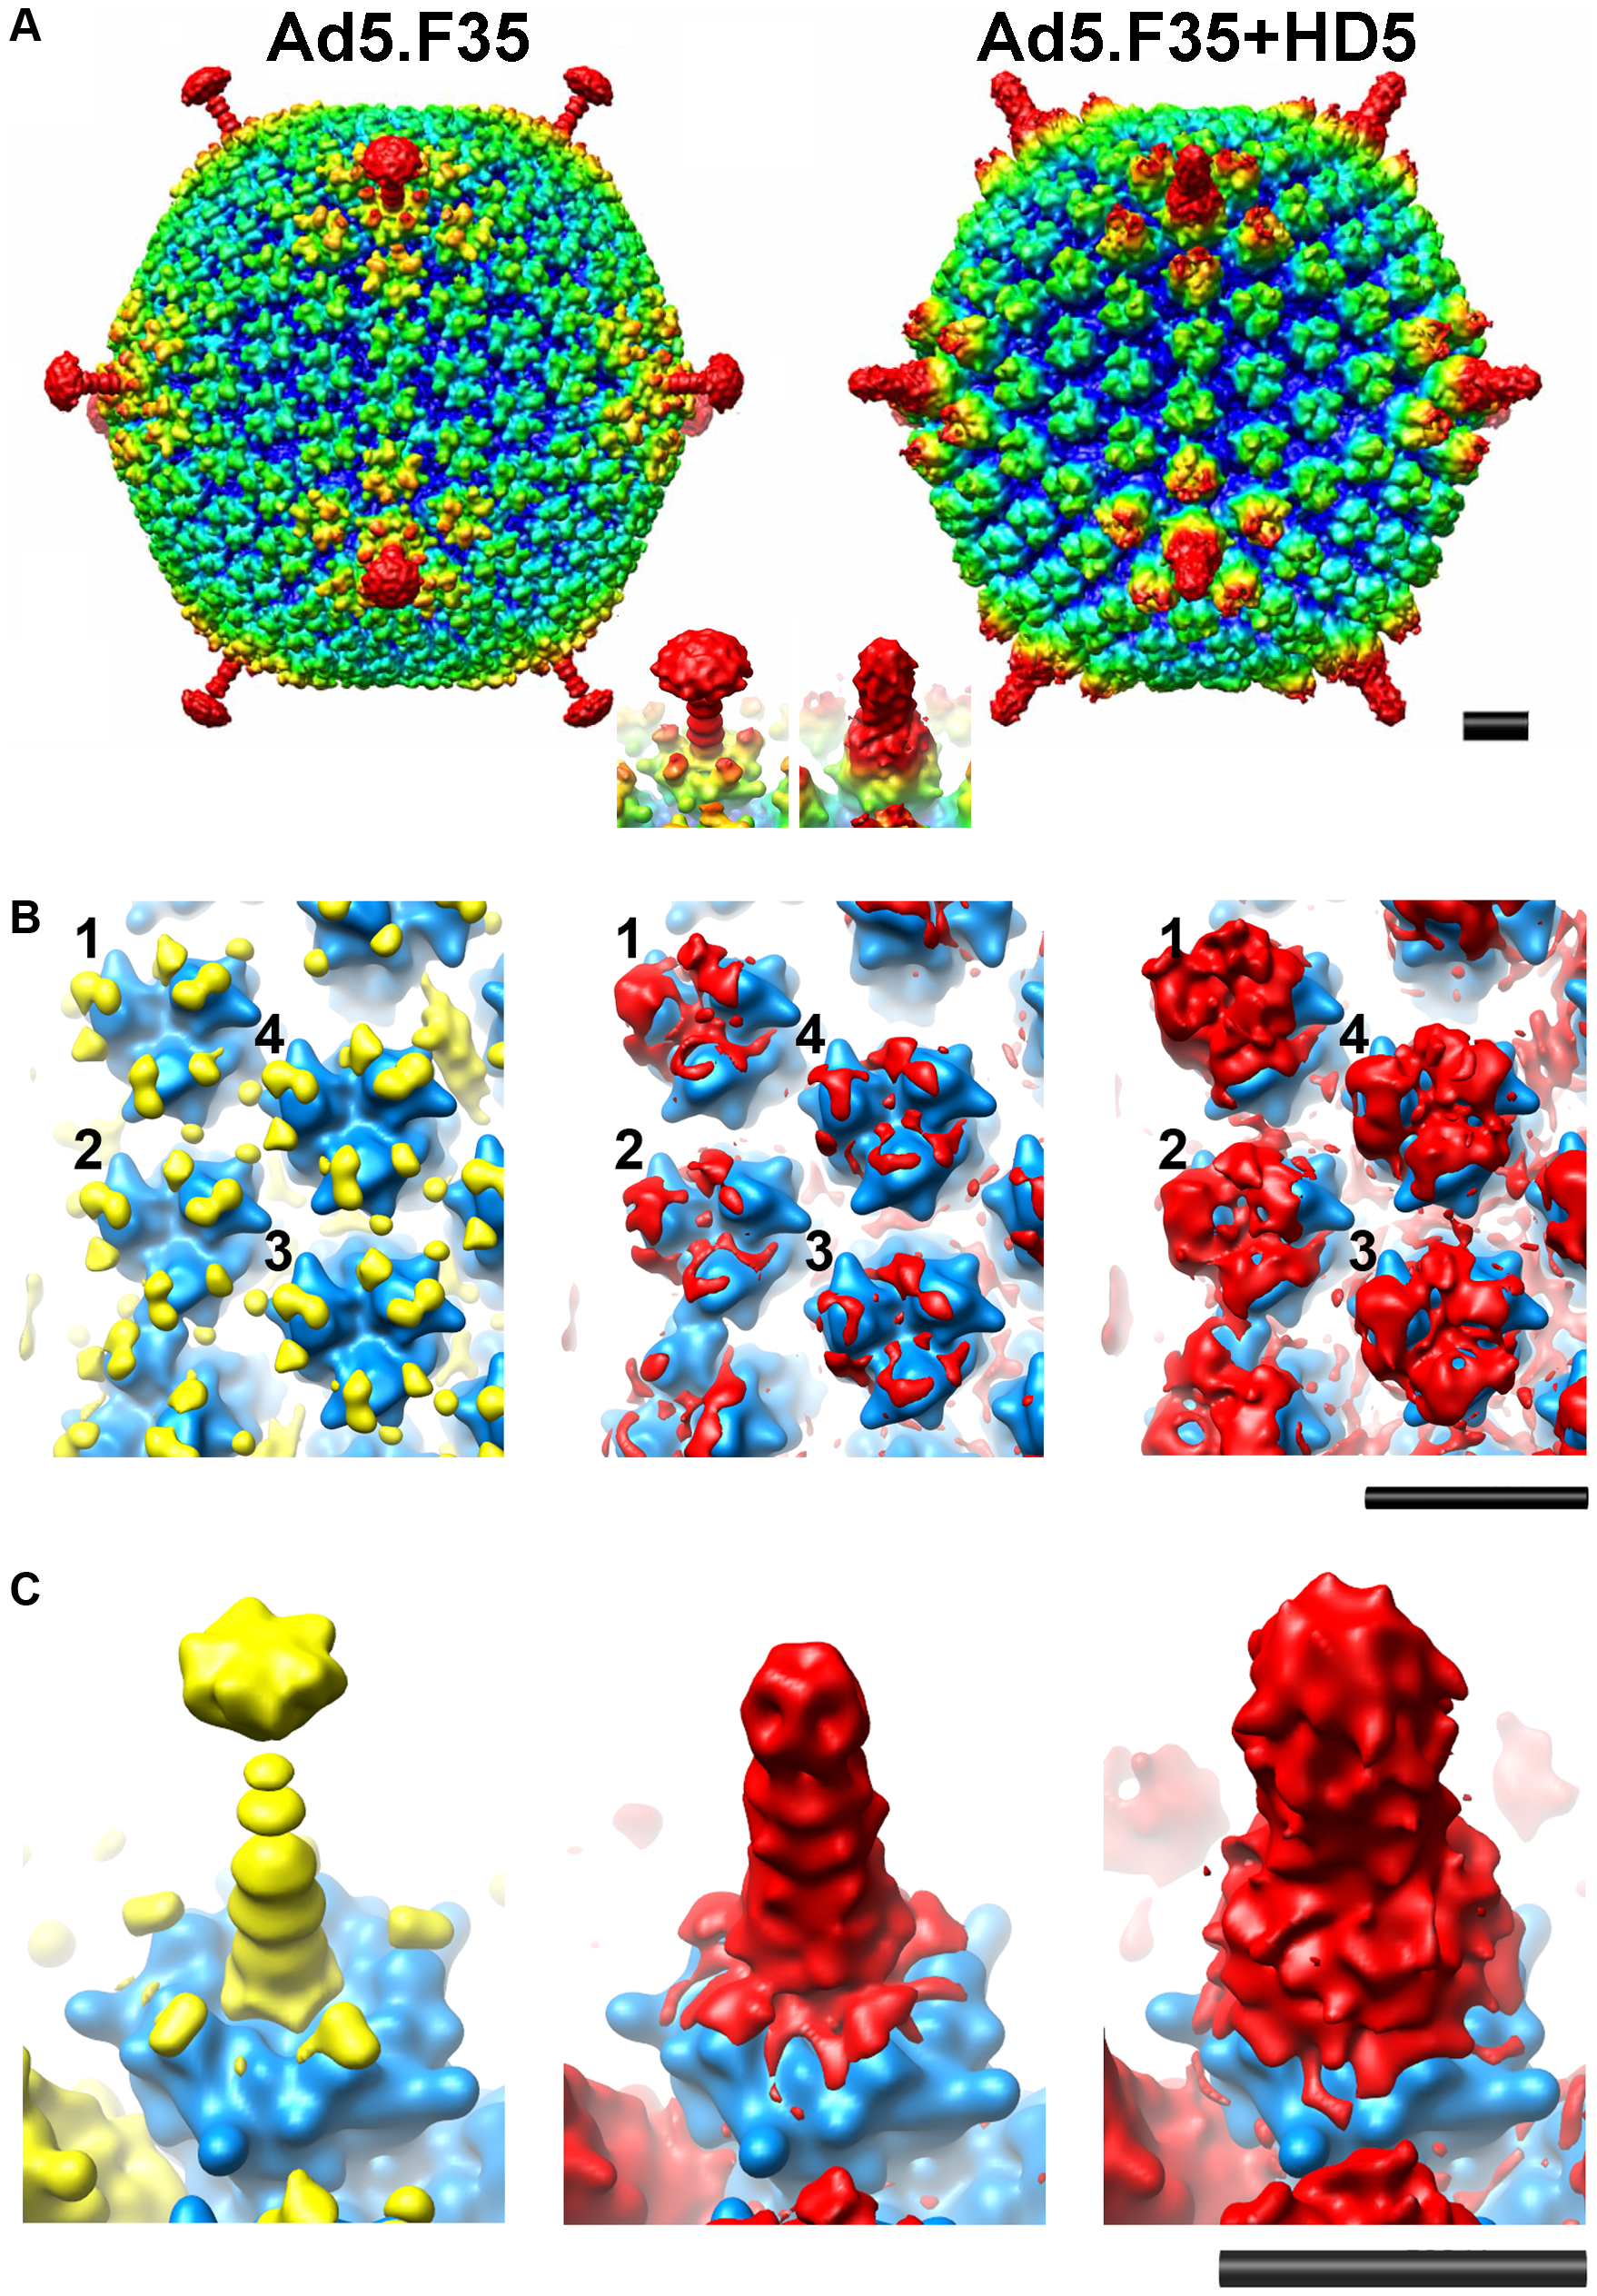 CryoEM structures of Ad5.F35 and Ad5.F35+HD5.